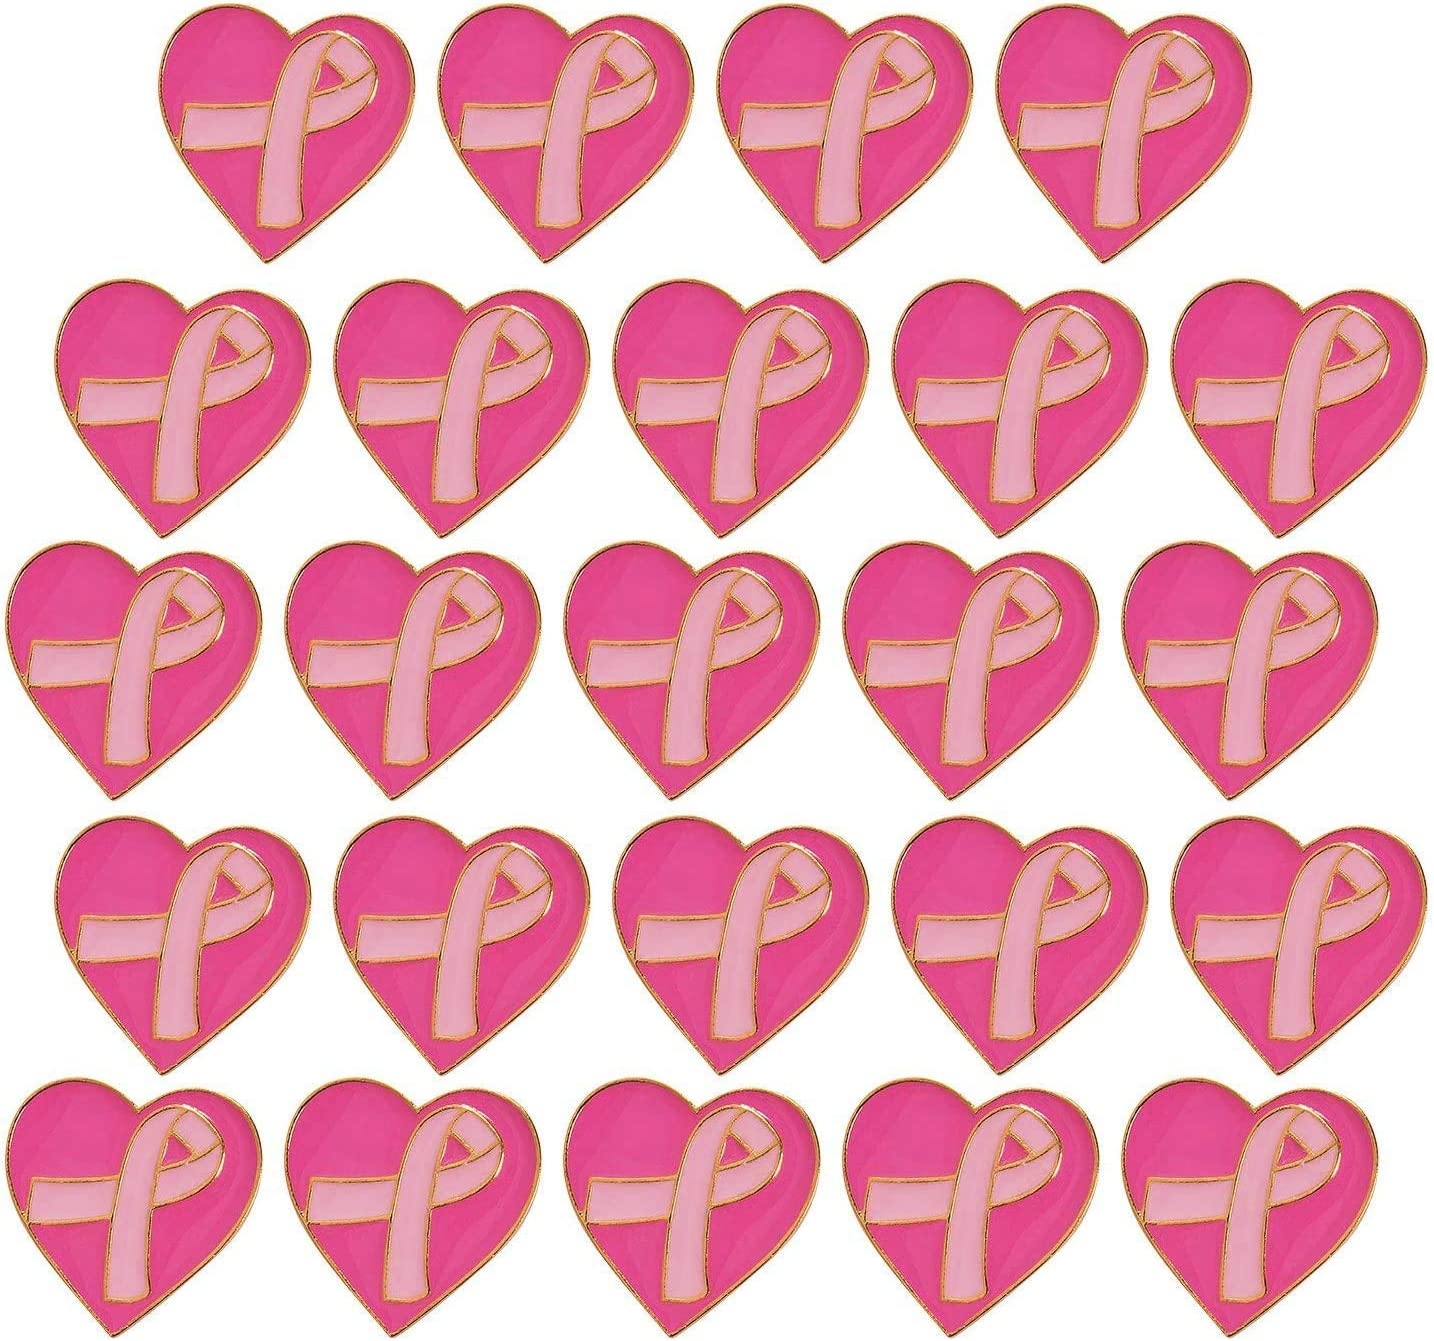 24 Breast Max 65% OFF Cancer Pin - sold out Small Aw 1 inch Pink Ribbon